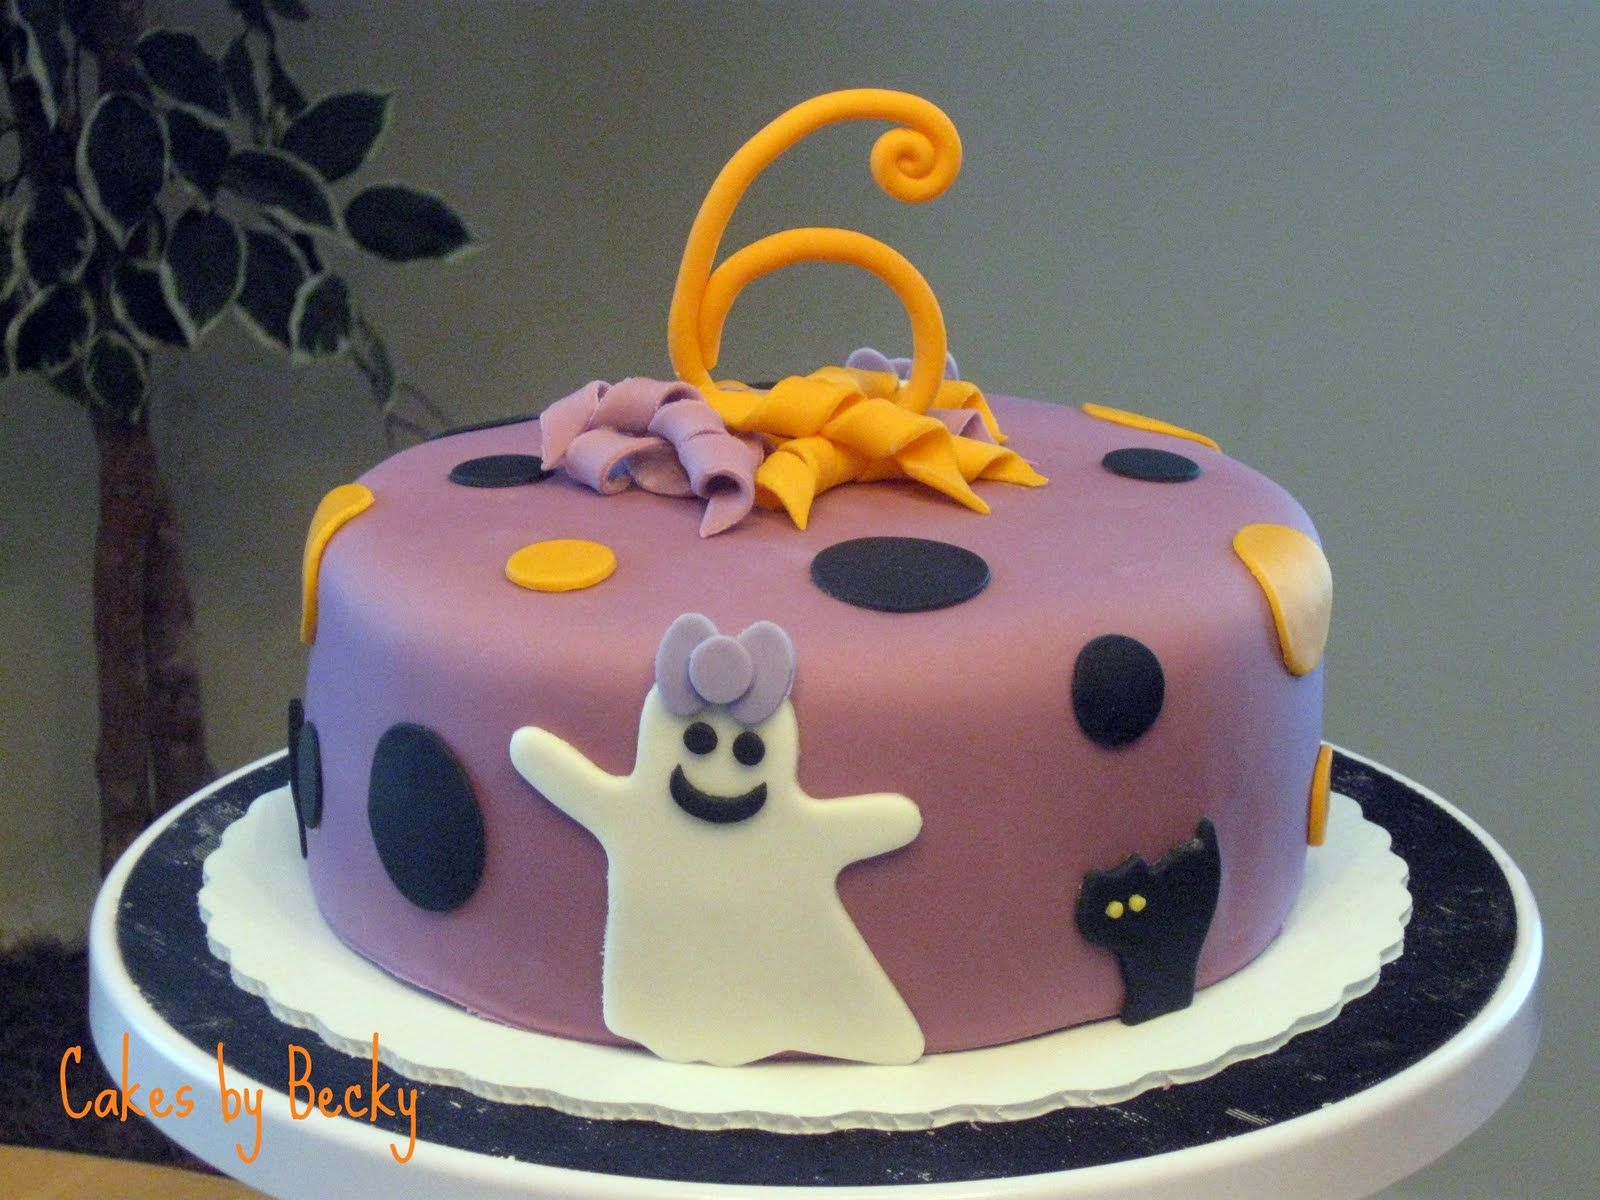 girlshalloweencakes Not So Scary Halloween Birthday Cake Cakes